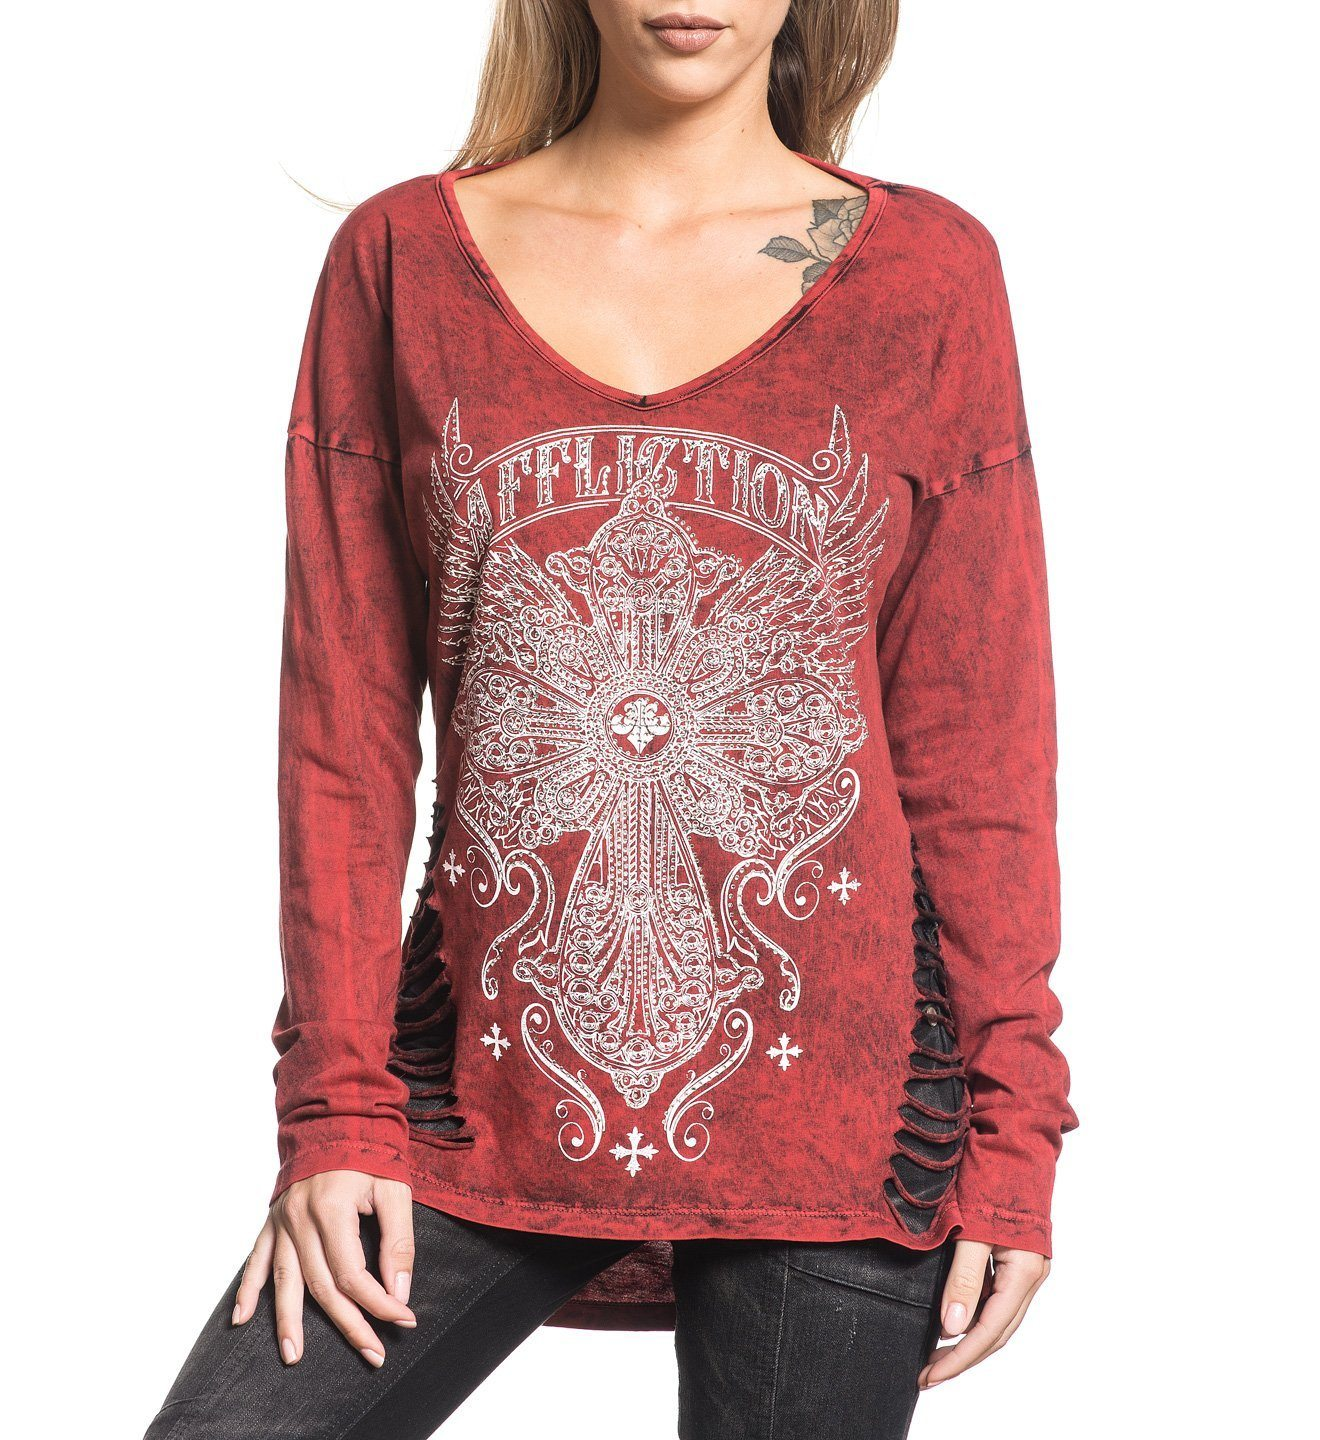 dd31f84bedb7 Long Sleeve Tee with Side Slits - Affliction Clothing